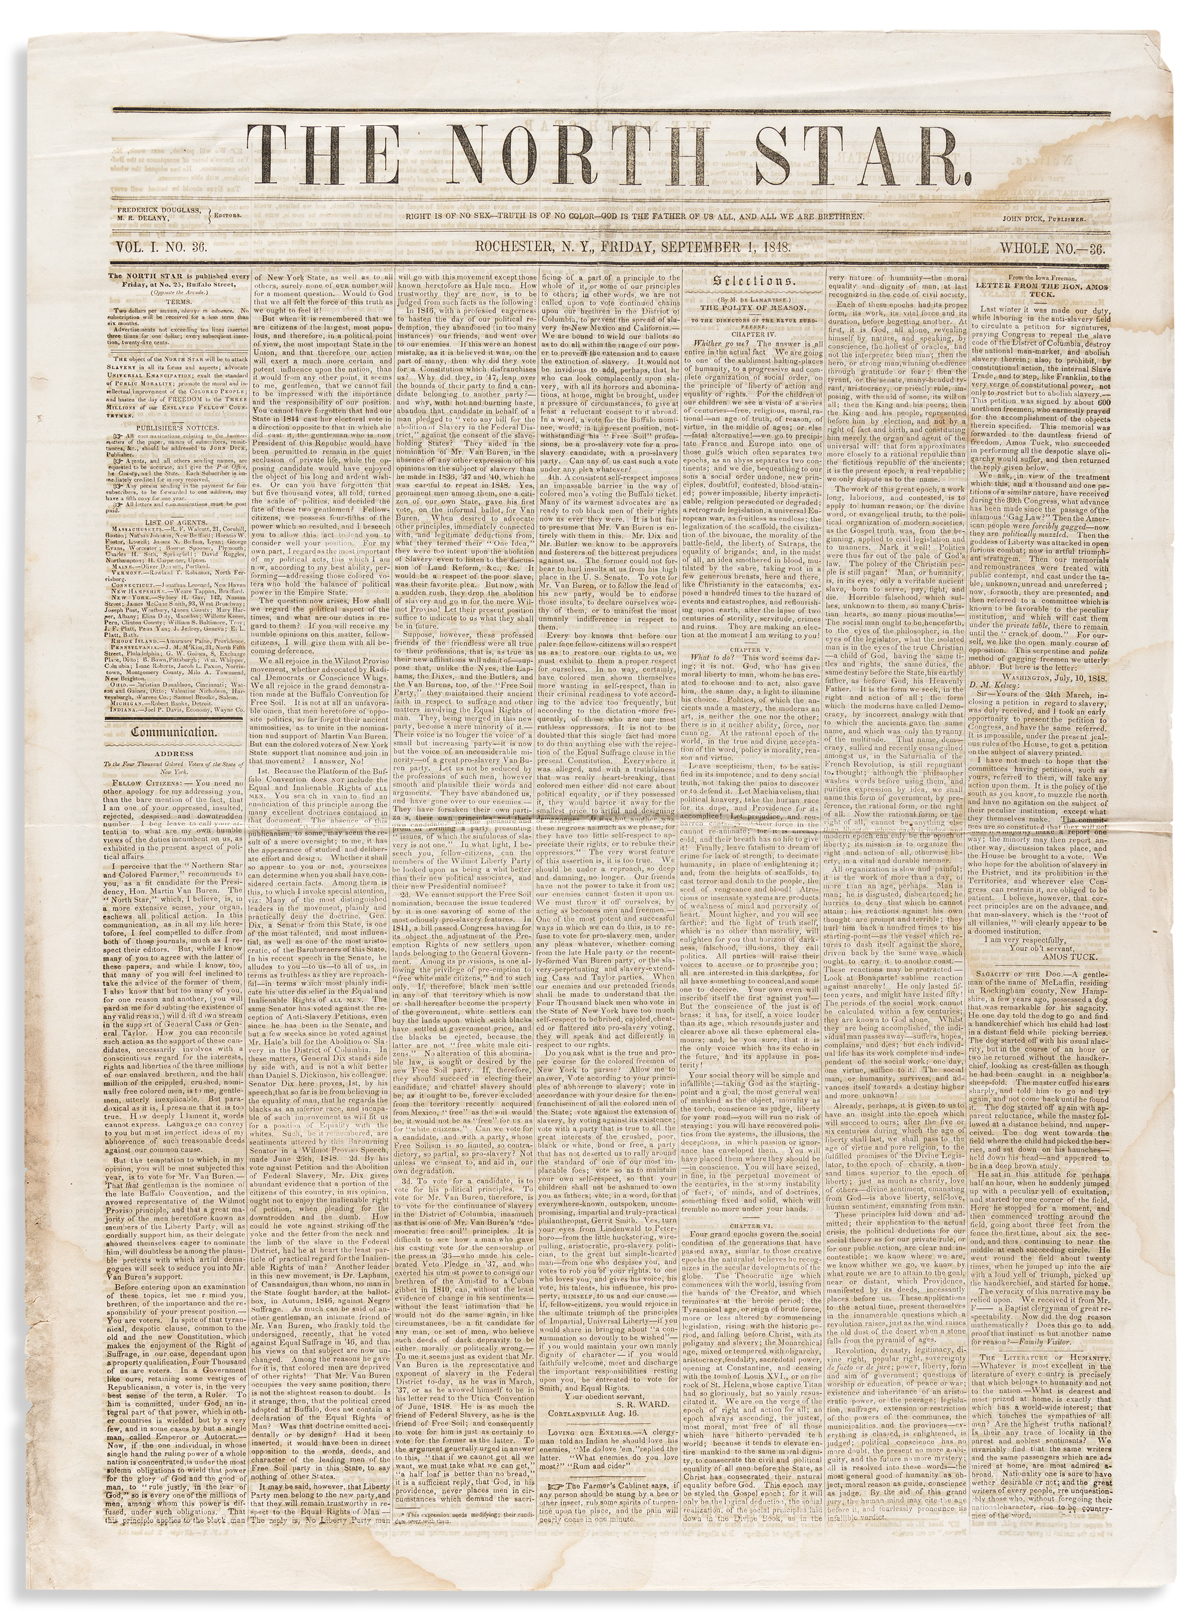 FREDERICK DOUGLASS; editor. Early issue of the North Star,